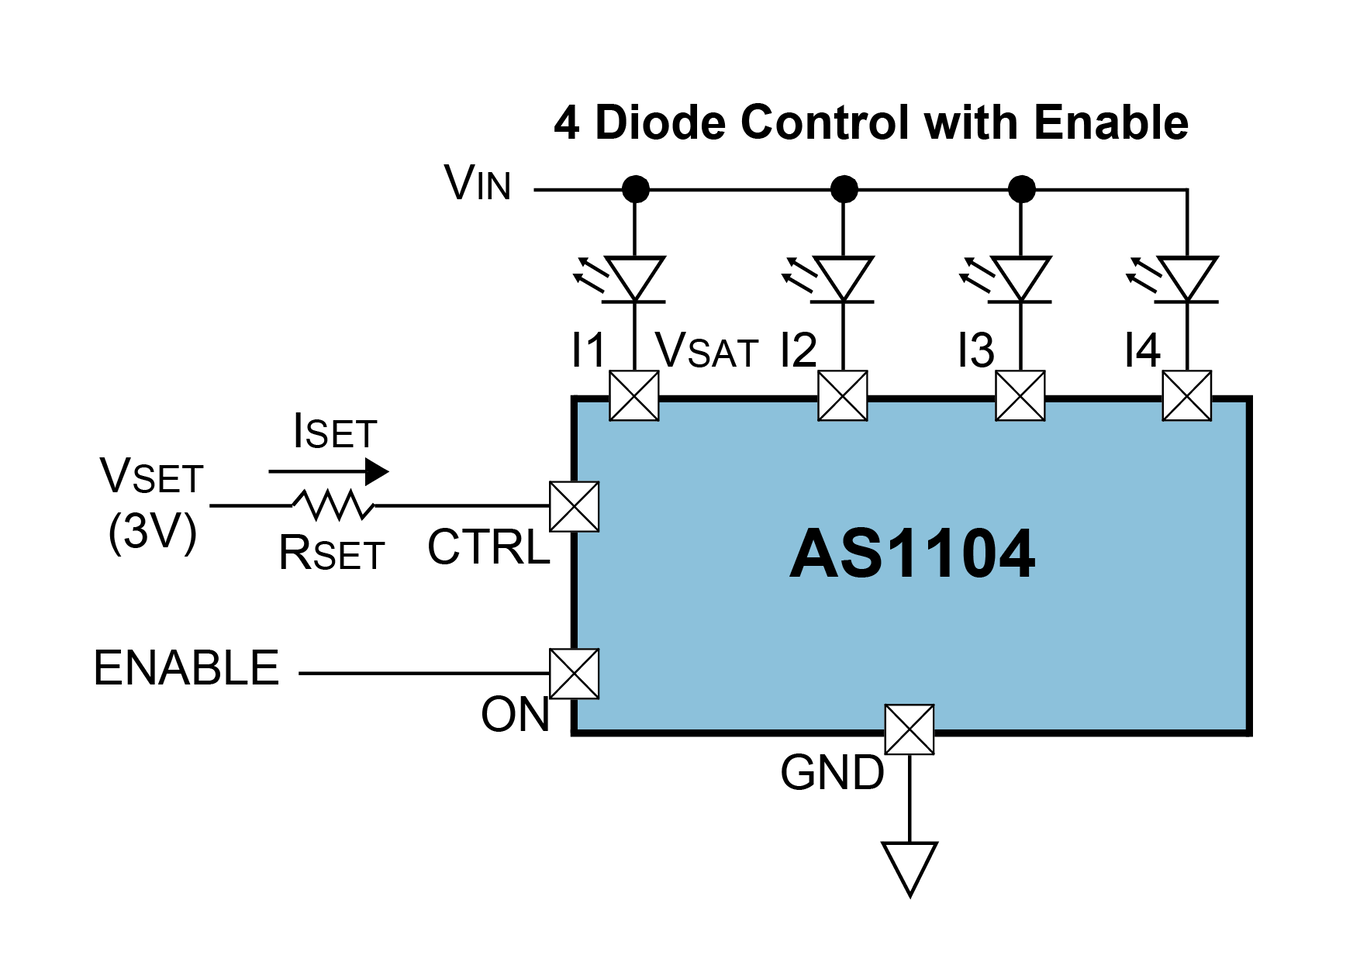 As1104 40ma Led For 4led Channels With Analog And Pwm Brightness Consider The Following Series Resistive Circuit It Offers 4 Outputs Which Can Be Dimmed An External Adjusted In Current Resistor Only Requires 150mv Headroom Voltage